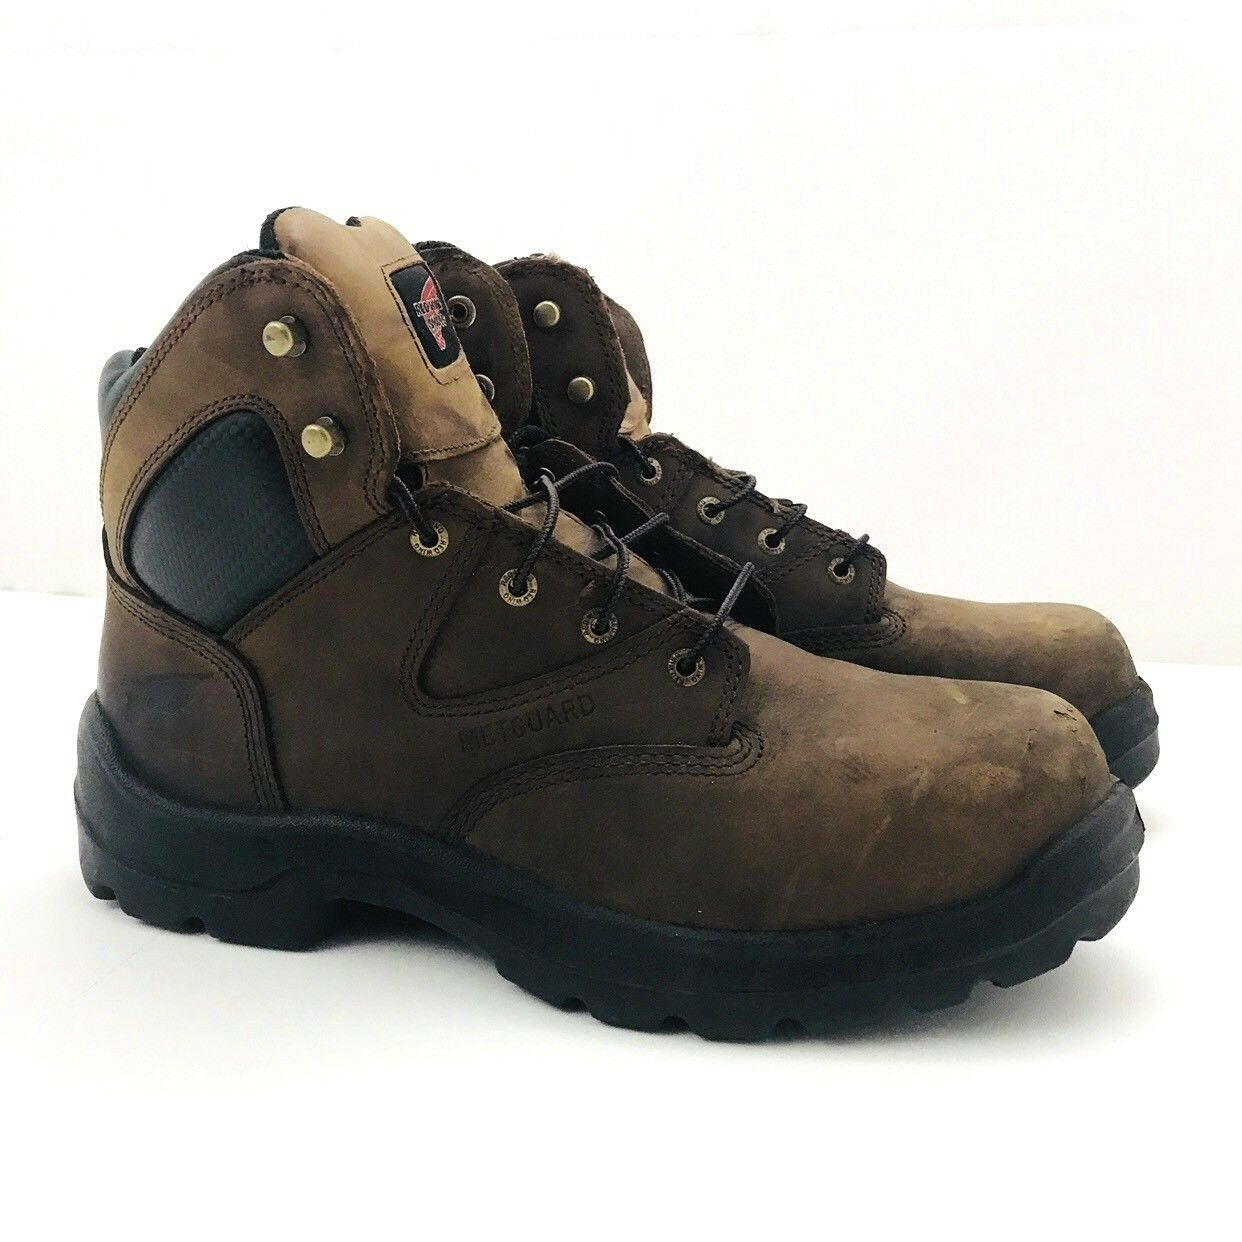 "prodotto di qualità Red Wing 4421 4421 4421 6"" Work stivali Metatarsal Safety Toe Electrical Hazard 10.5 D  basta comprarlo"